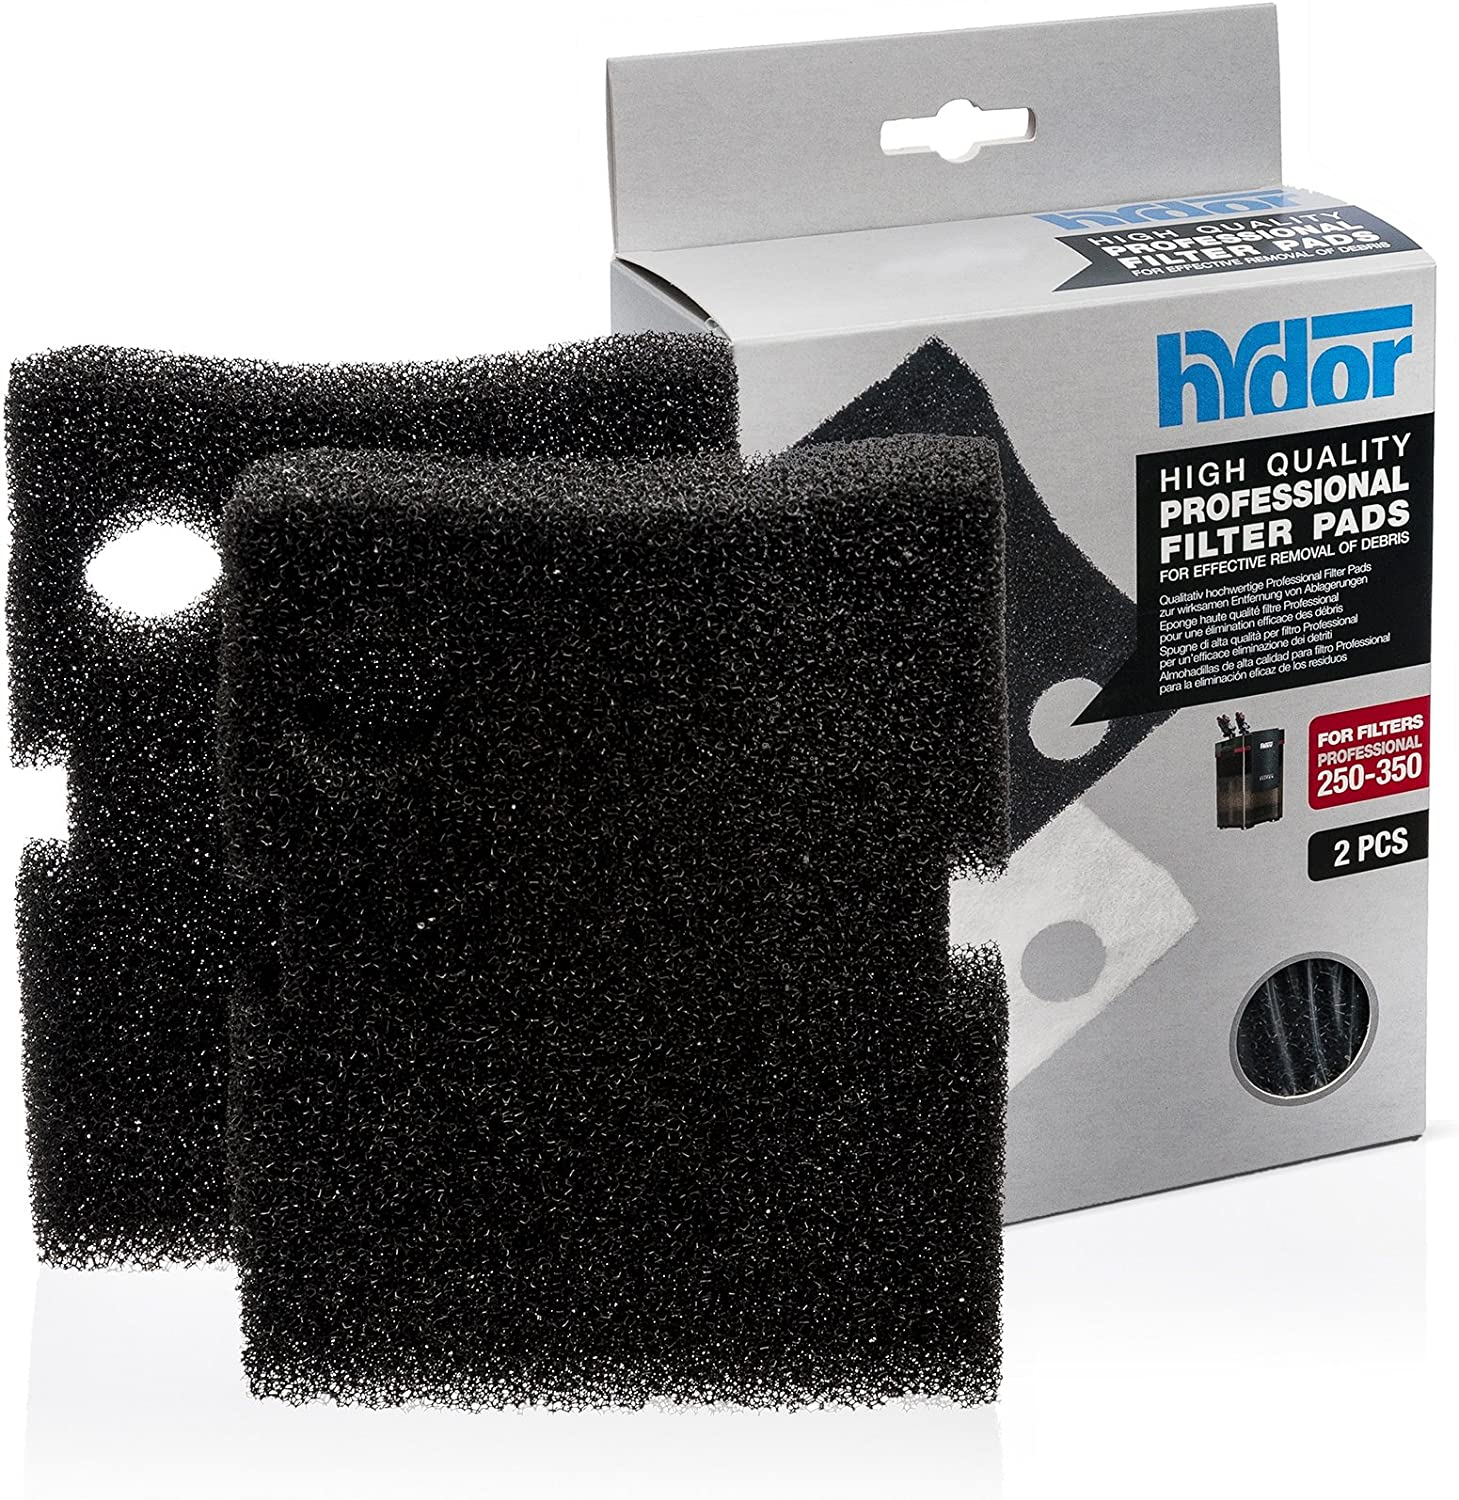 Canister Media Pro 250 350 Blk Pad 2pk